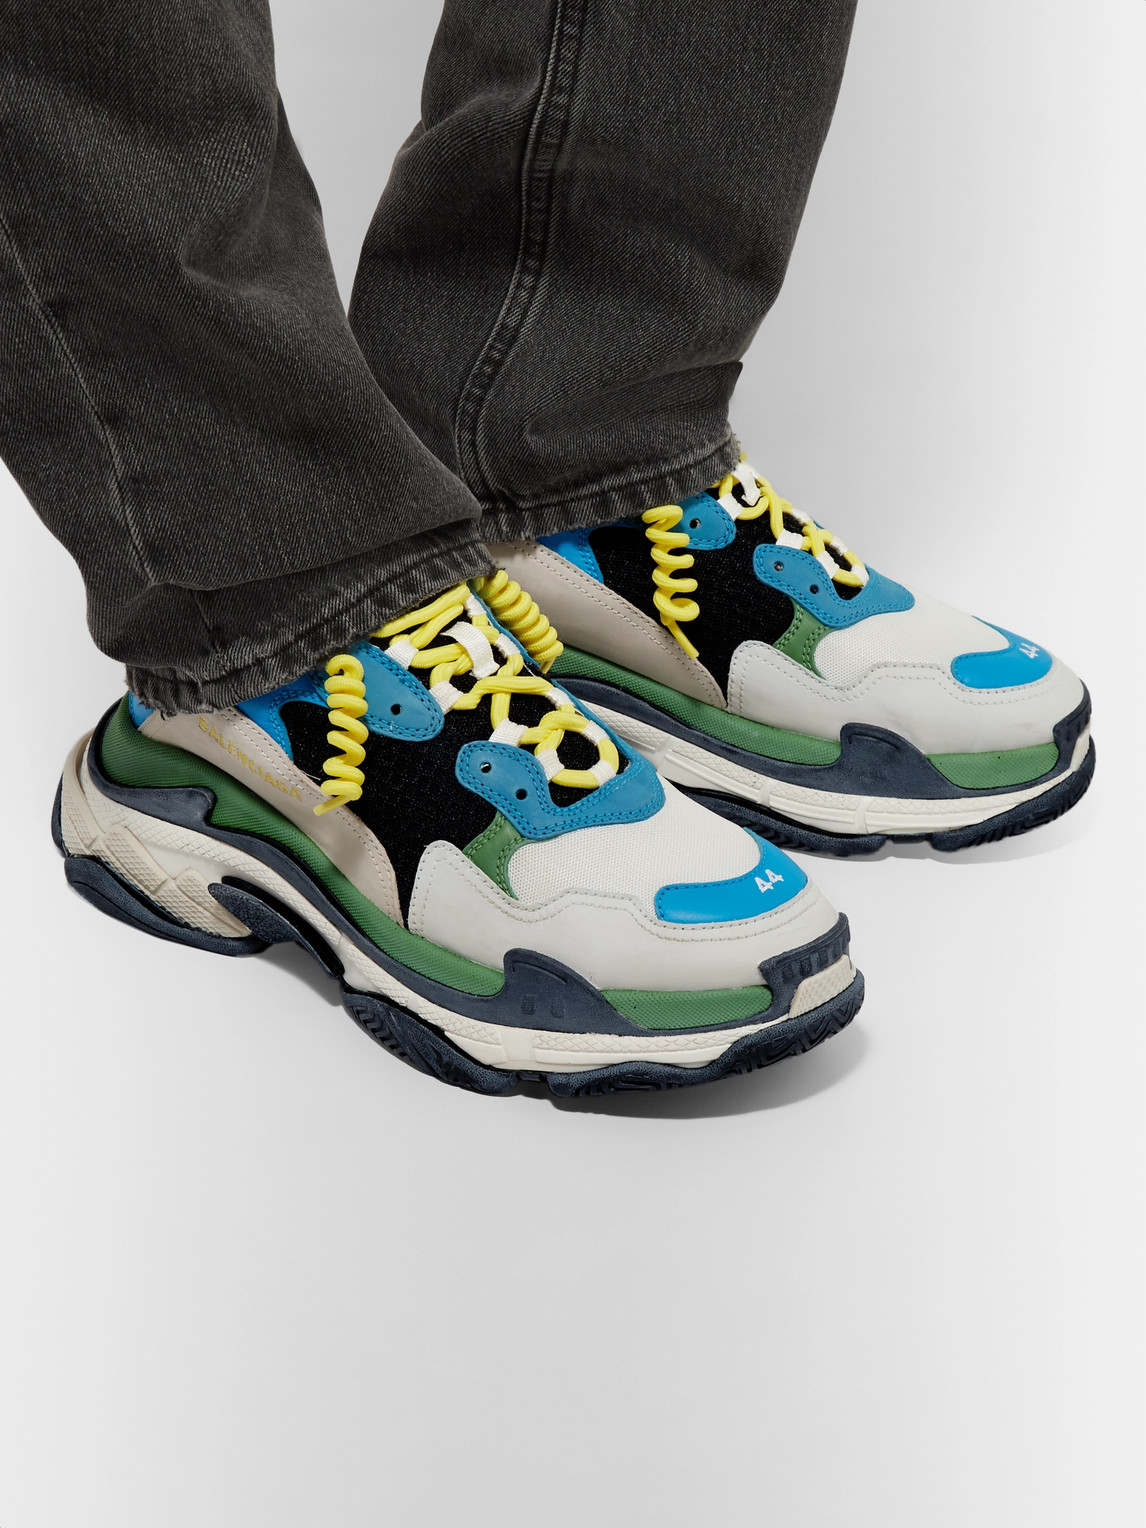 Balenciaga Sneakers TRIPLE S MESH, LEATHER AND SUEDE SNEAKERS